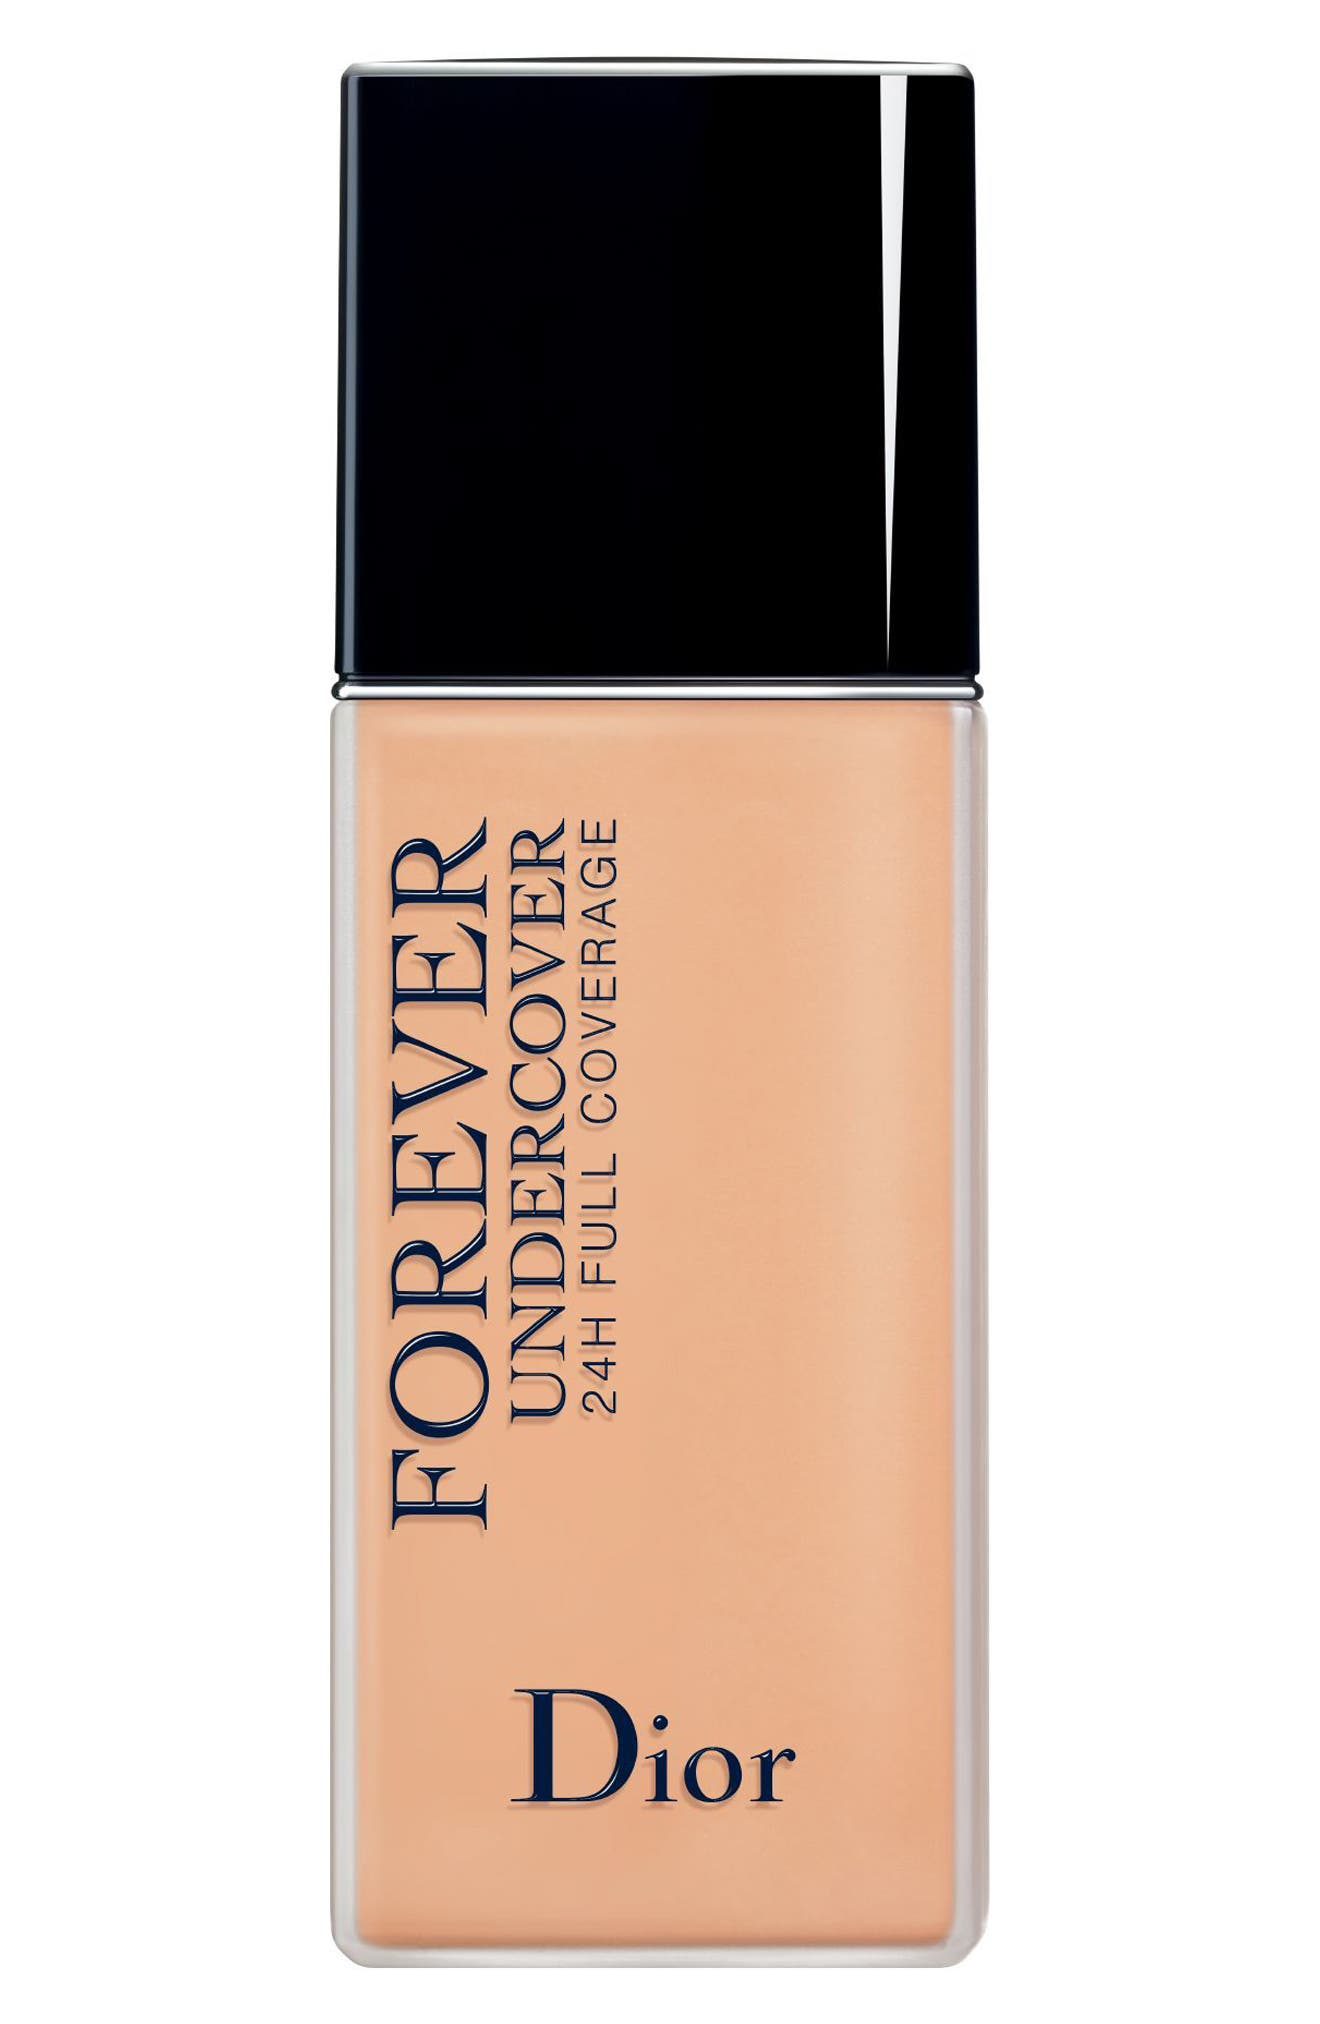 Dior Diorskin Forever Undercover 24-Hour Full Coverage Water-Based Foundation - 033 Apricot Beige